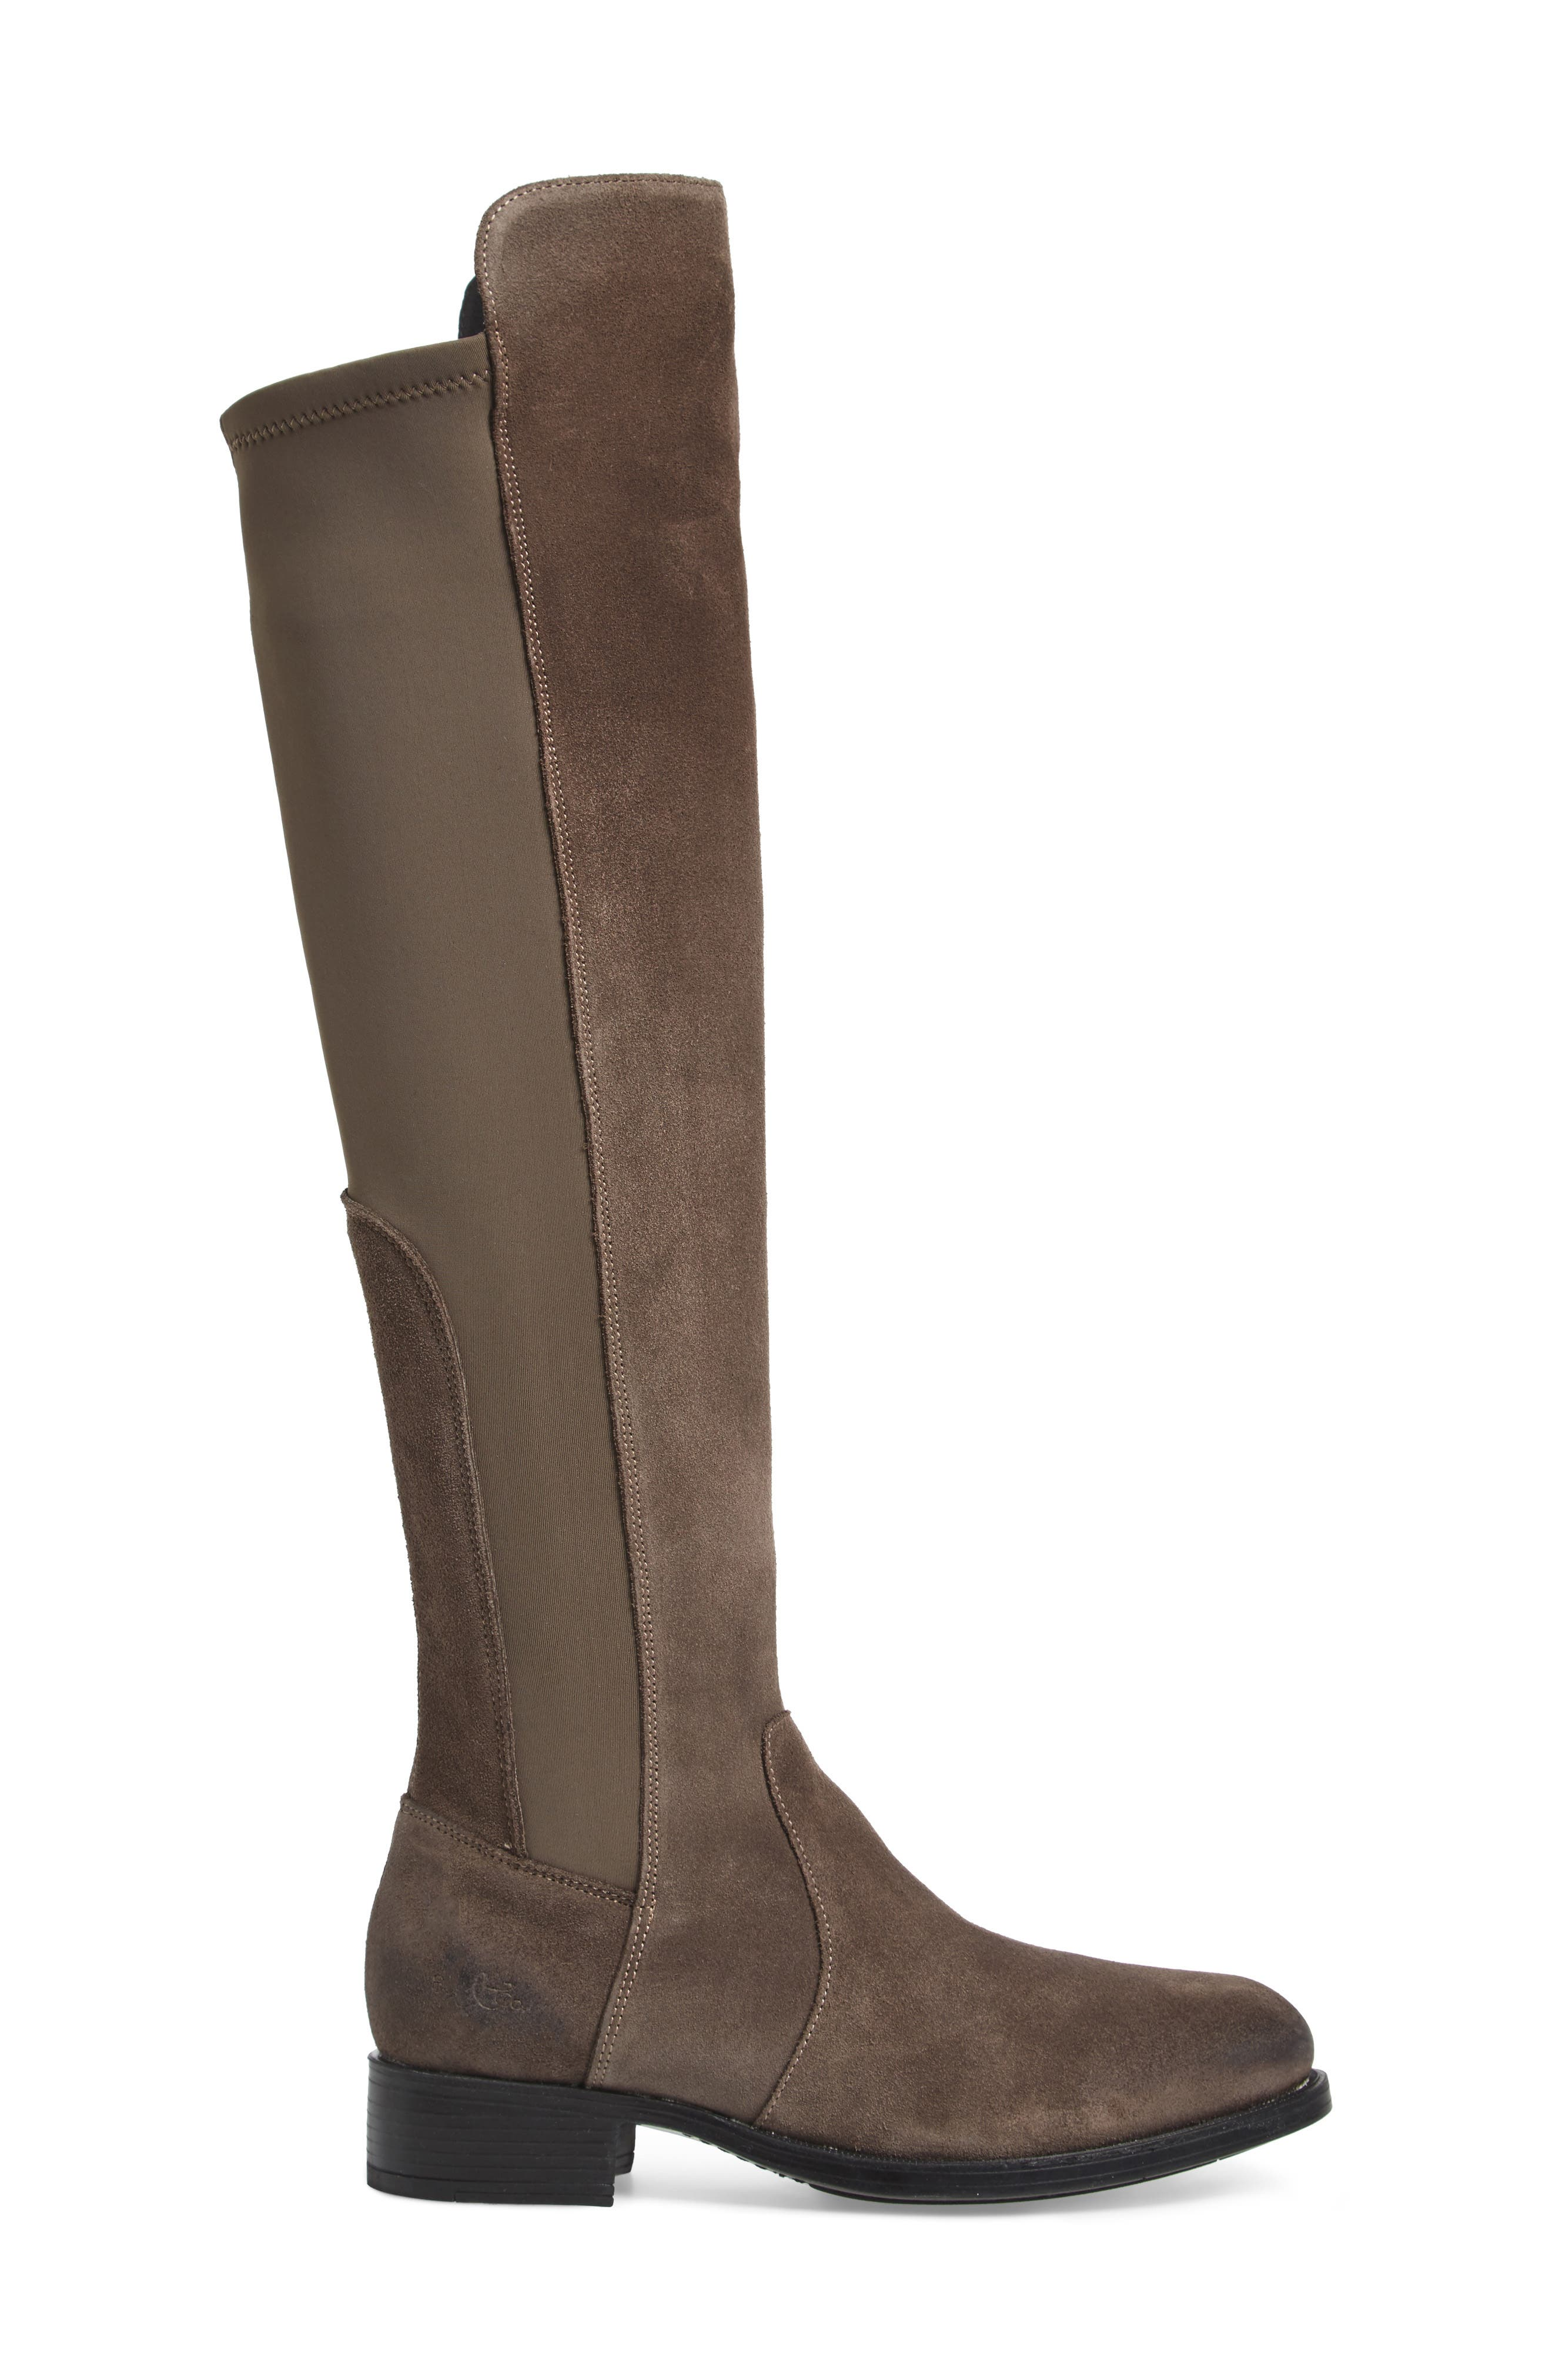 Bunt Waterproof Over the Knee Boot,                             Alternate thumbnail 3, color,                             Elephant Suede Leather